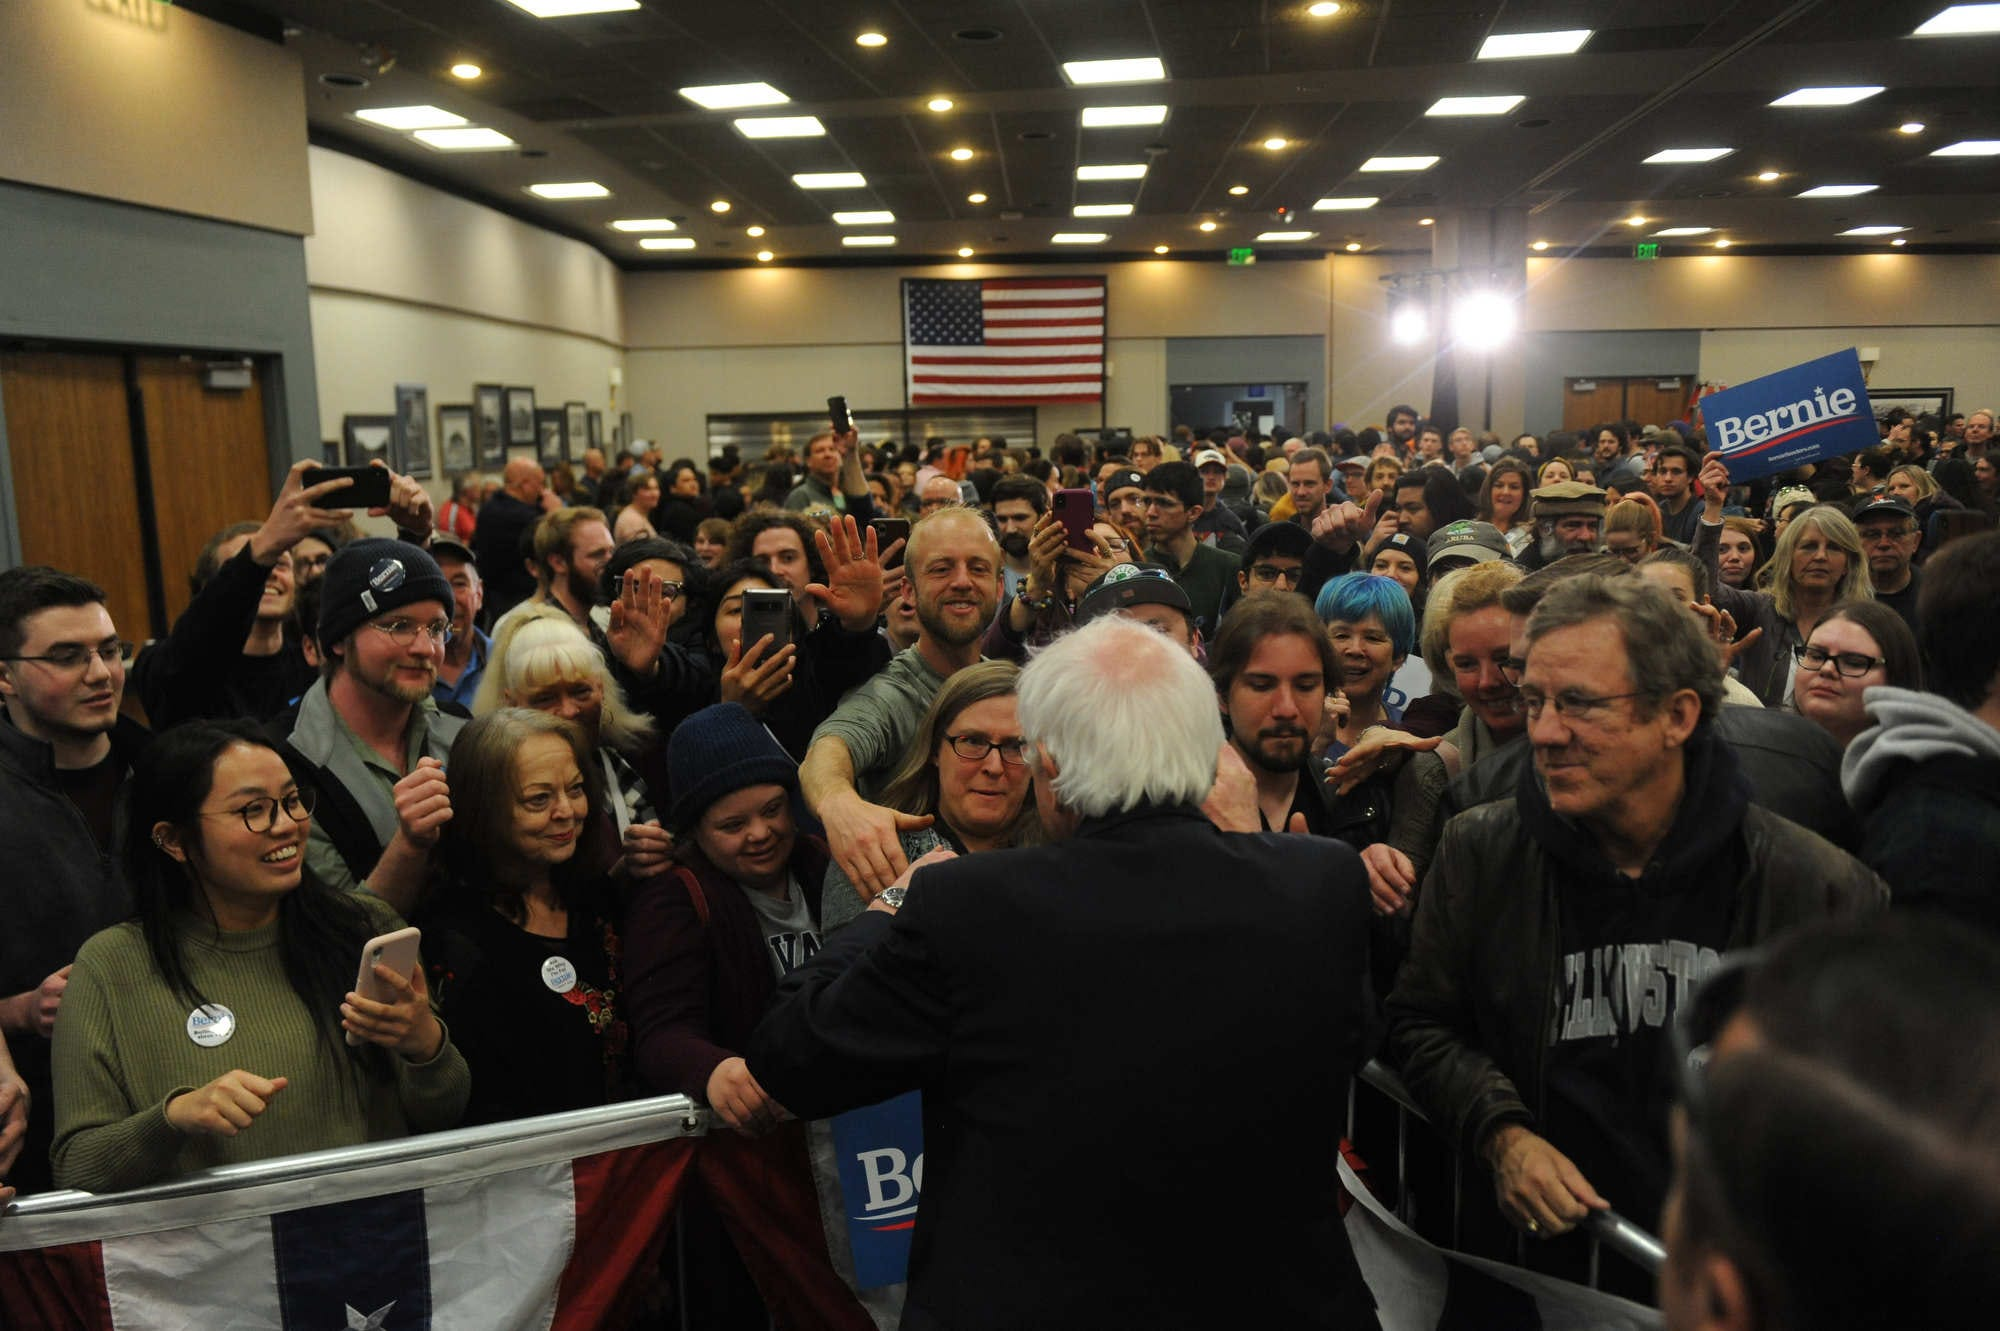 Democratic candidate for president Bernie Sanders campaigns at Lawlor Events Center in Reno on Feb. 18, 2020.